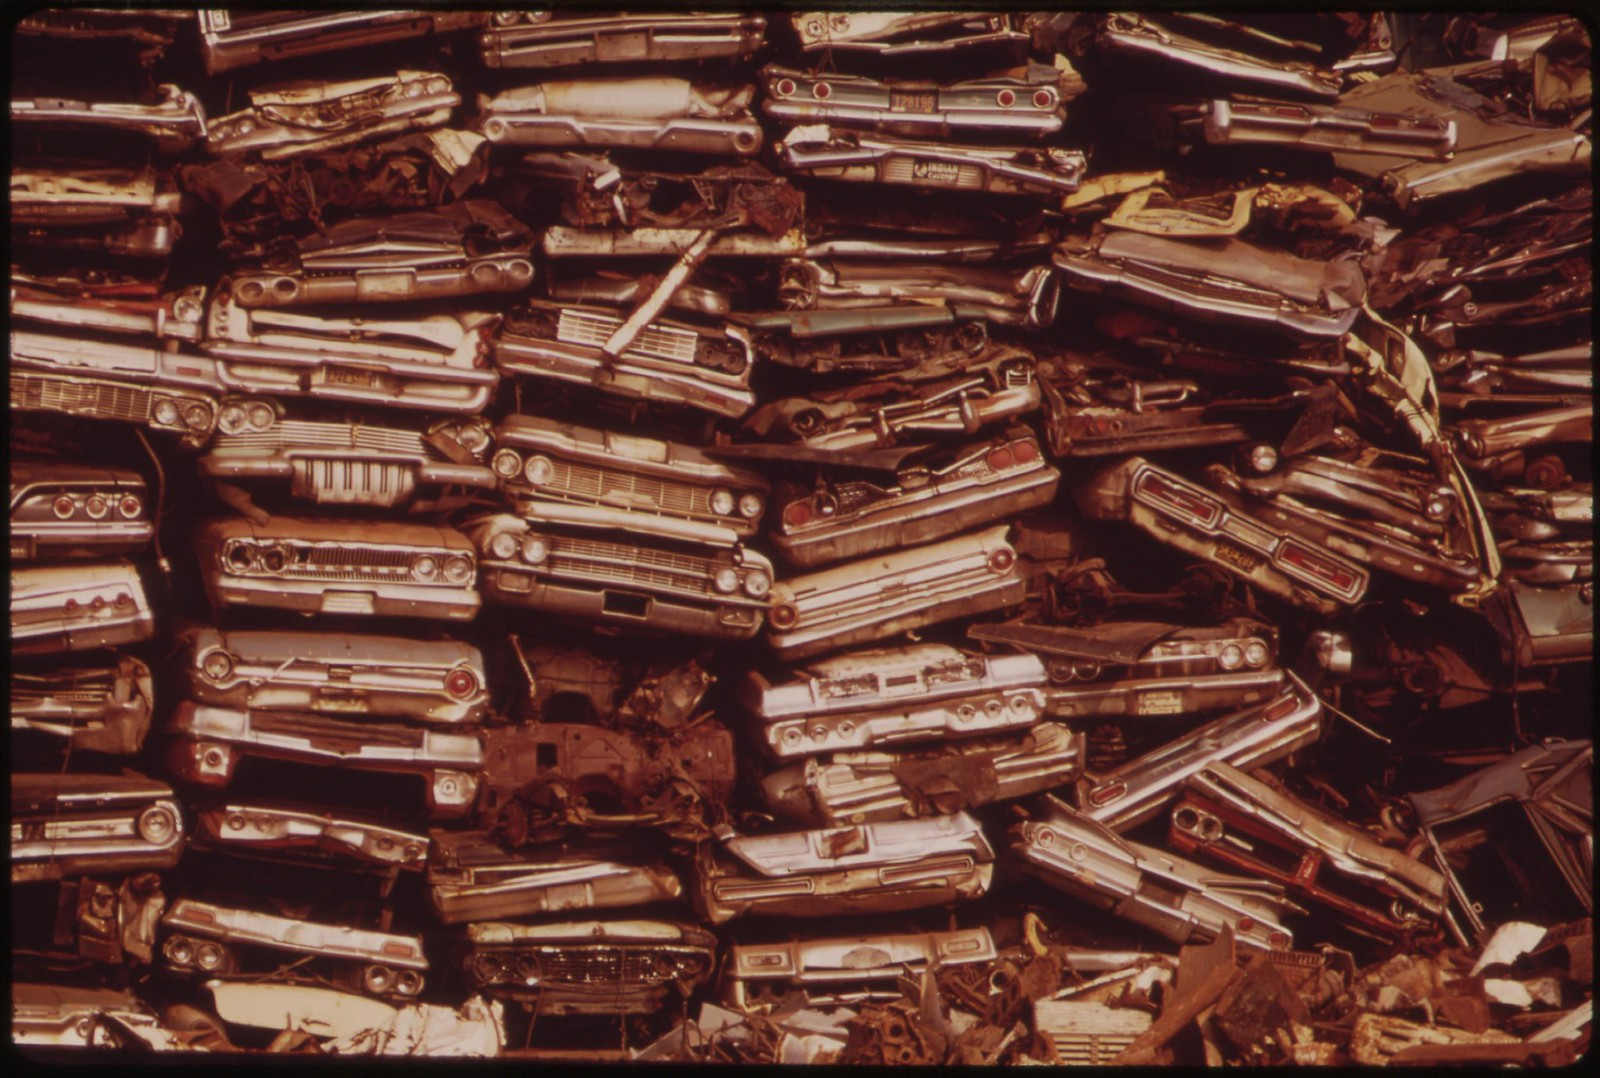 Stacked Cars In City Junkyard Will Be Used For Scrap, August 1973